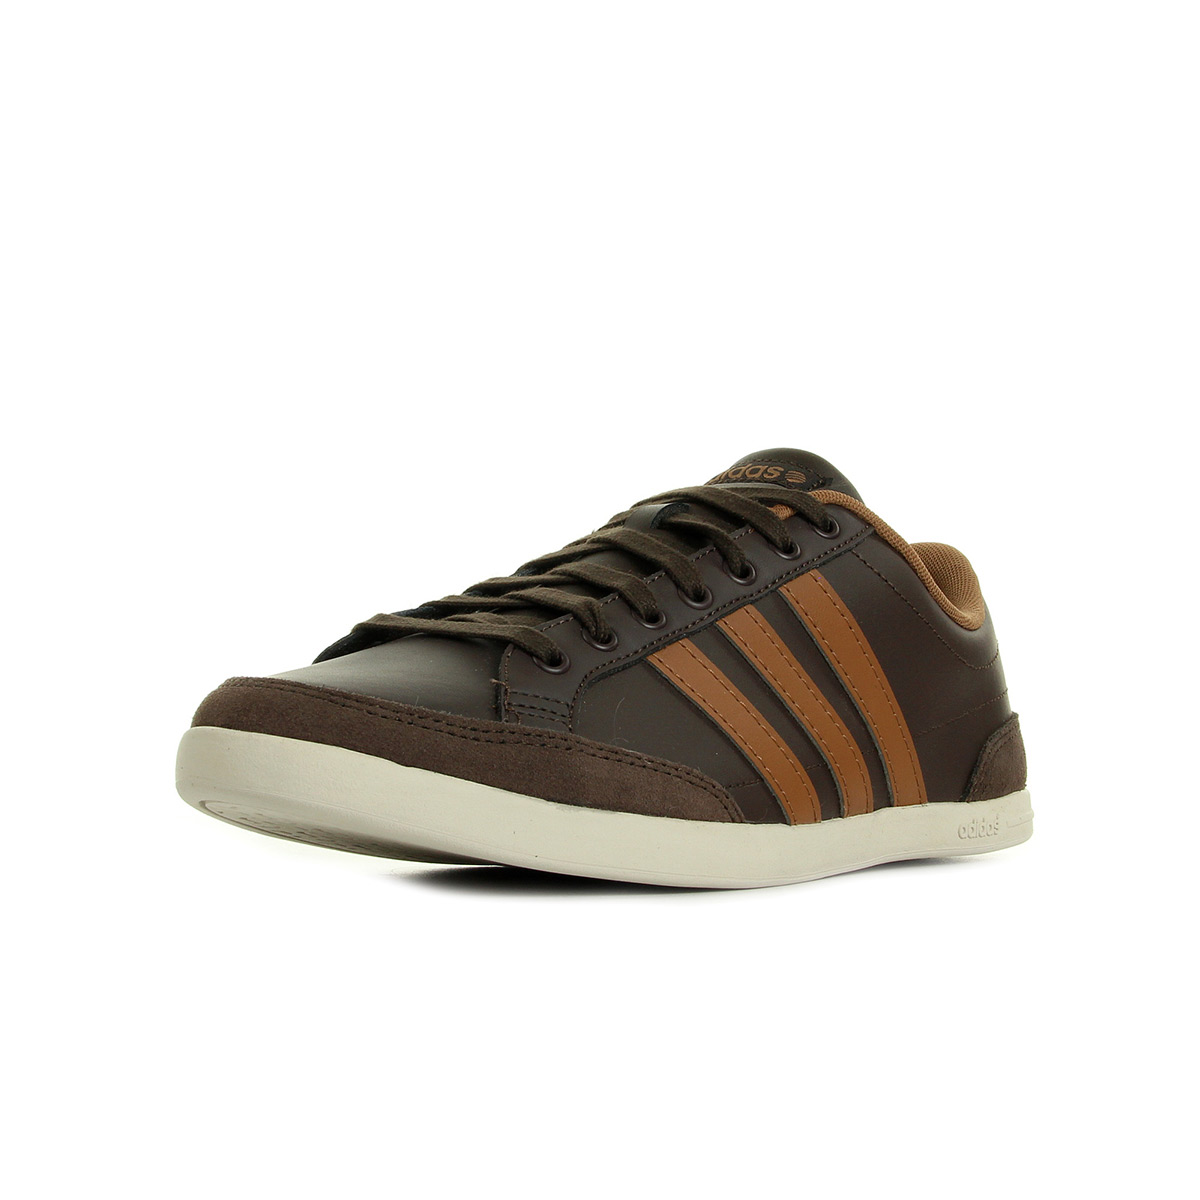 Adidas Tradition Marron Homme 51Charcuterie Off Neo xoWrdCeB